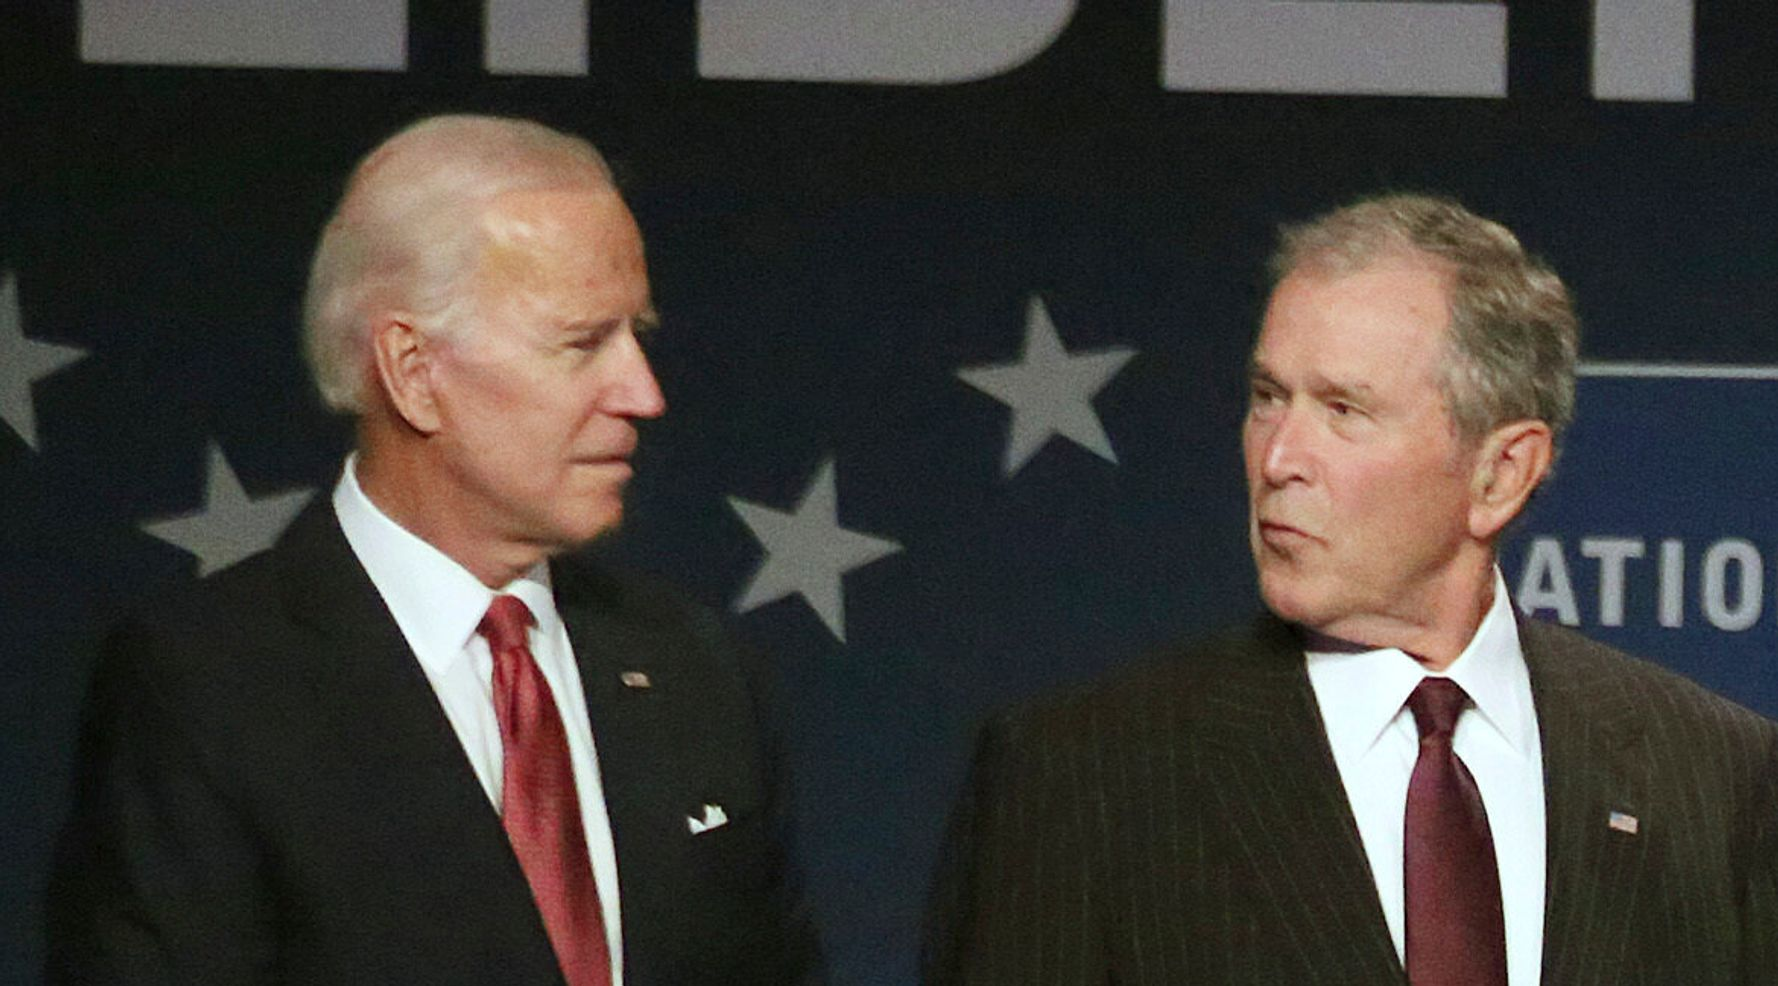 George W. Bush Congratulates Biden And Harris, Calls Election 'Fundamentally Fair'